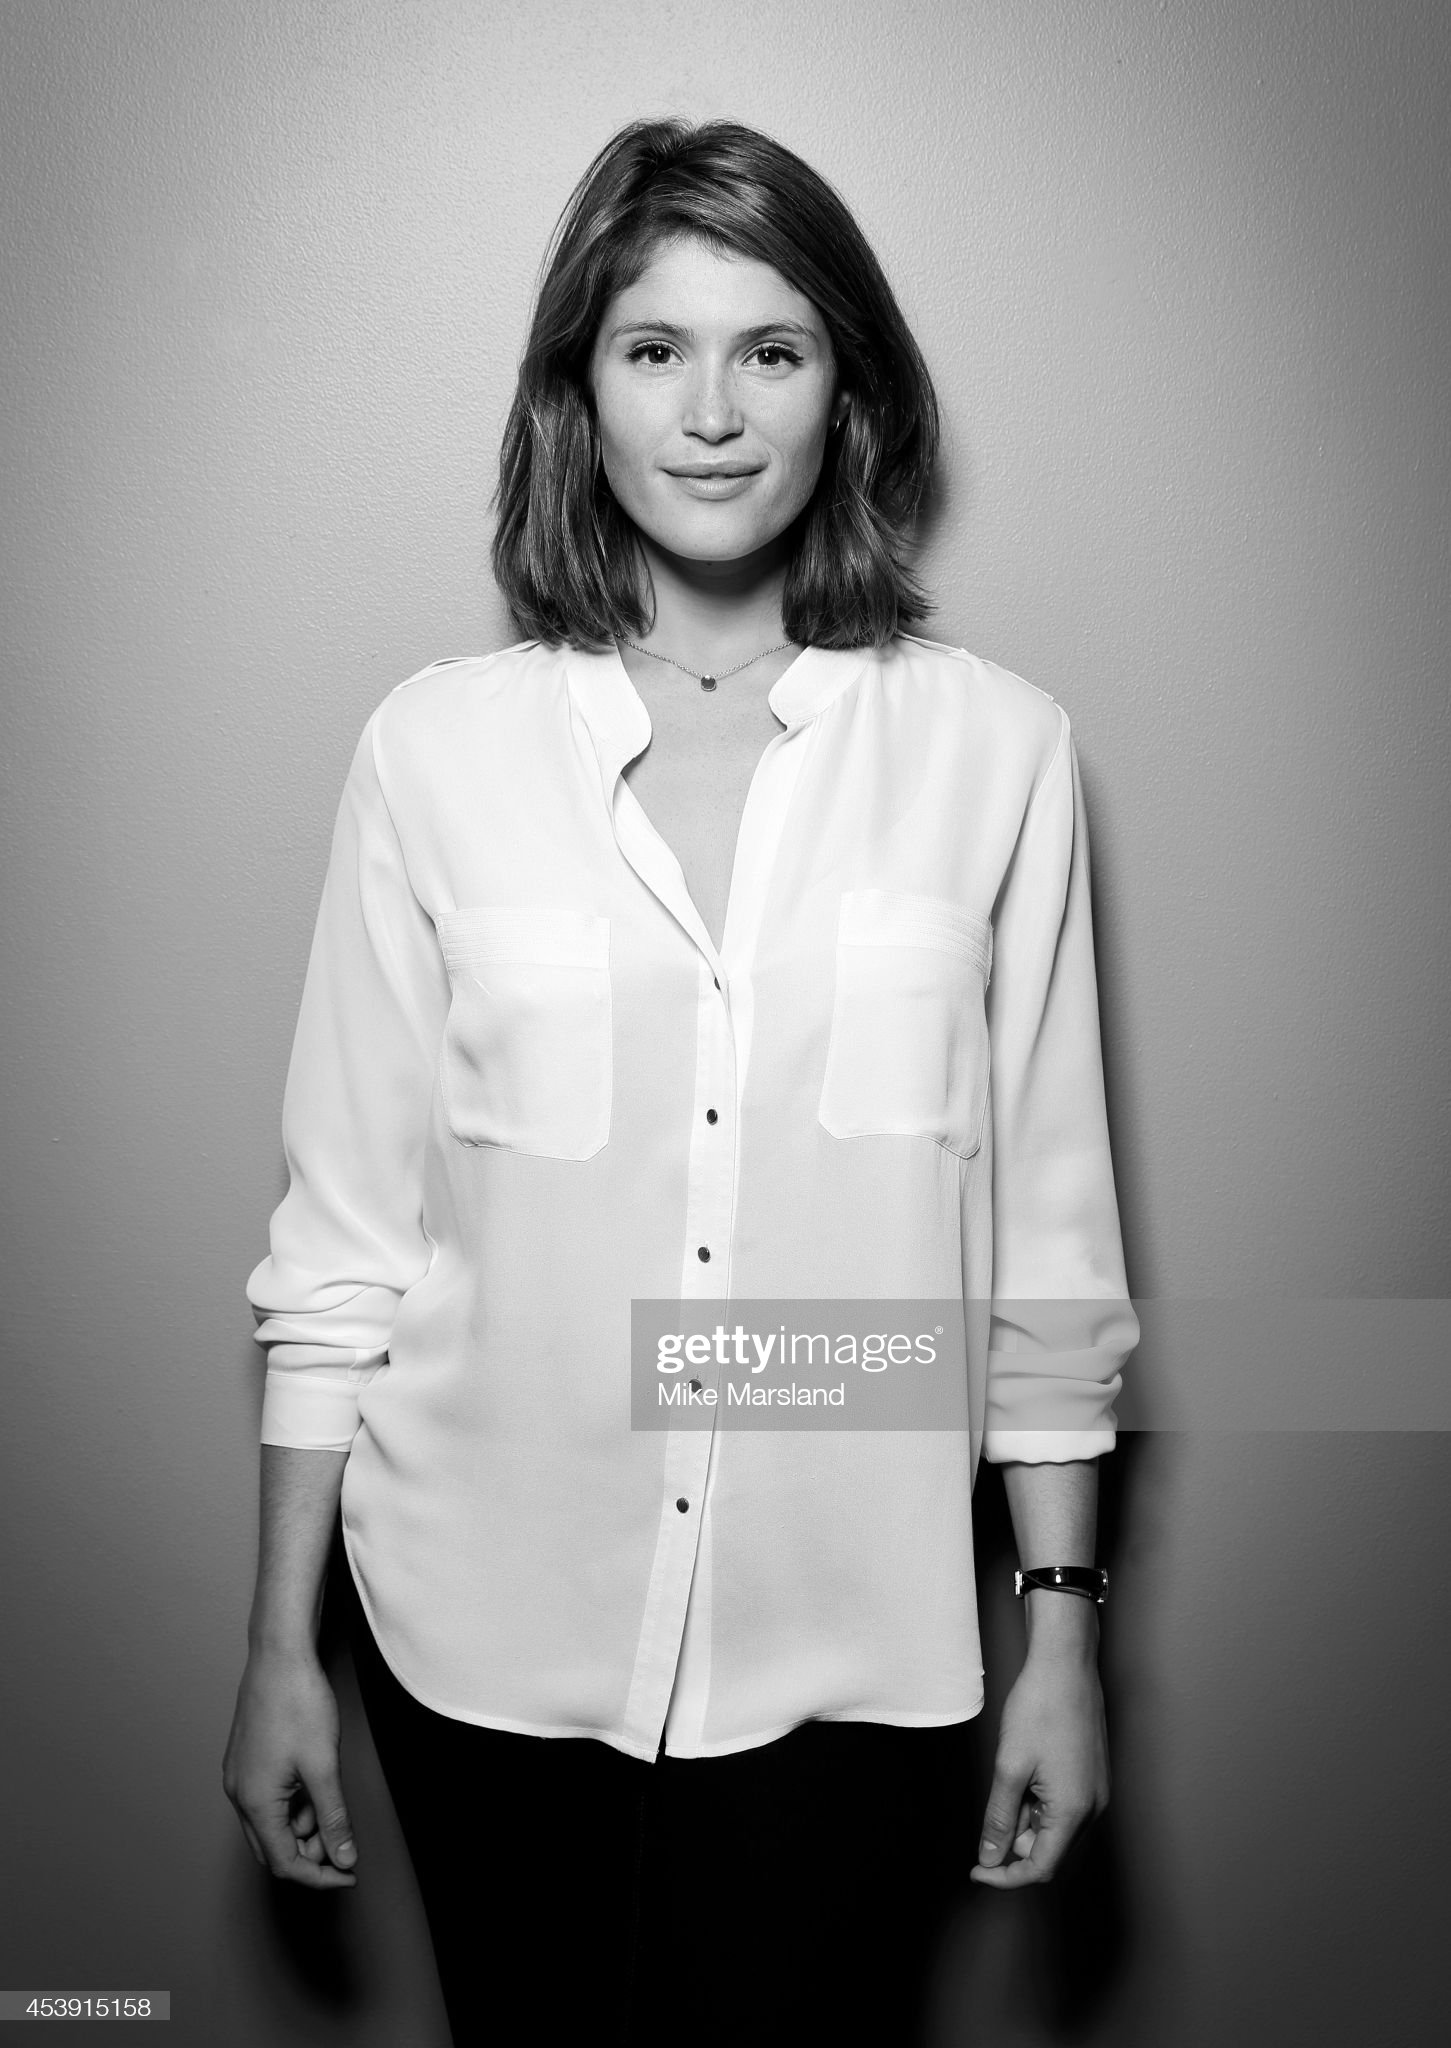 actress-gemma-arterton-is-photographed-at-the-bfi-southbank-the-film-picture-id453915158